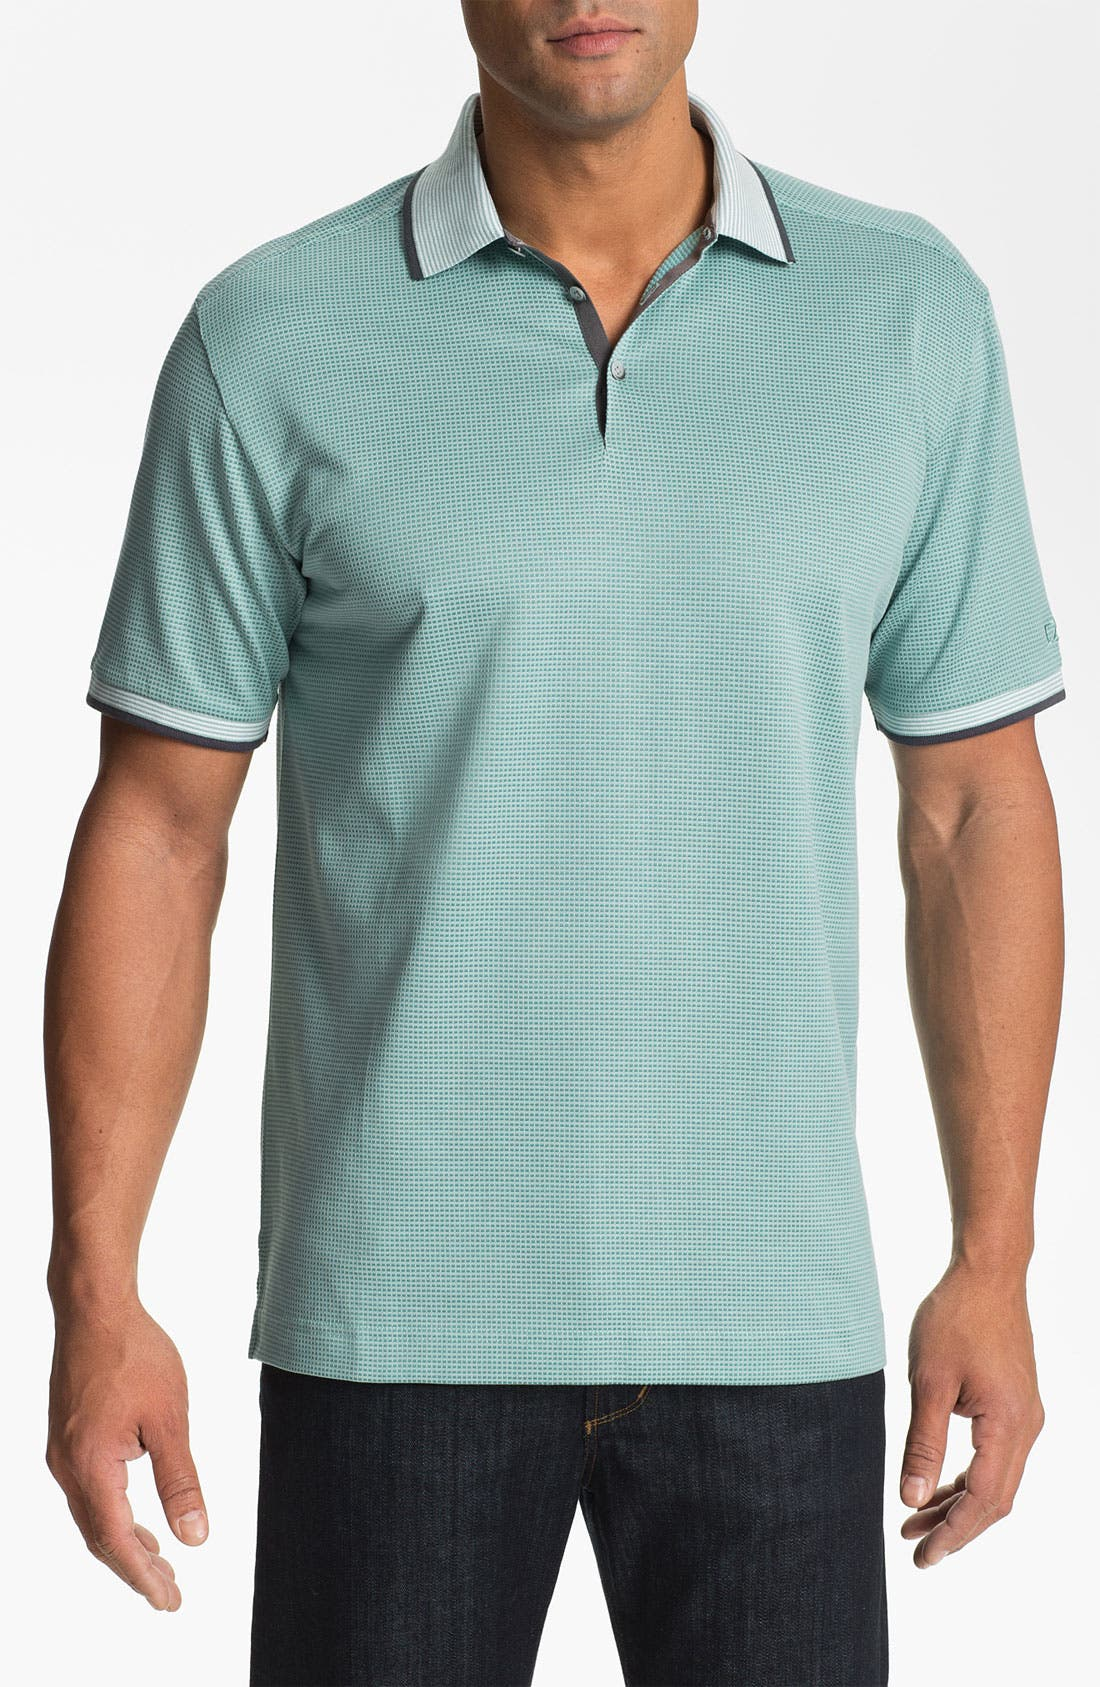 Main Image - Cutter & Buck 'Luxe - Shaw' DryTec Golf Polo (Big & Tall) (Online Only)